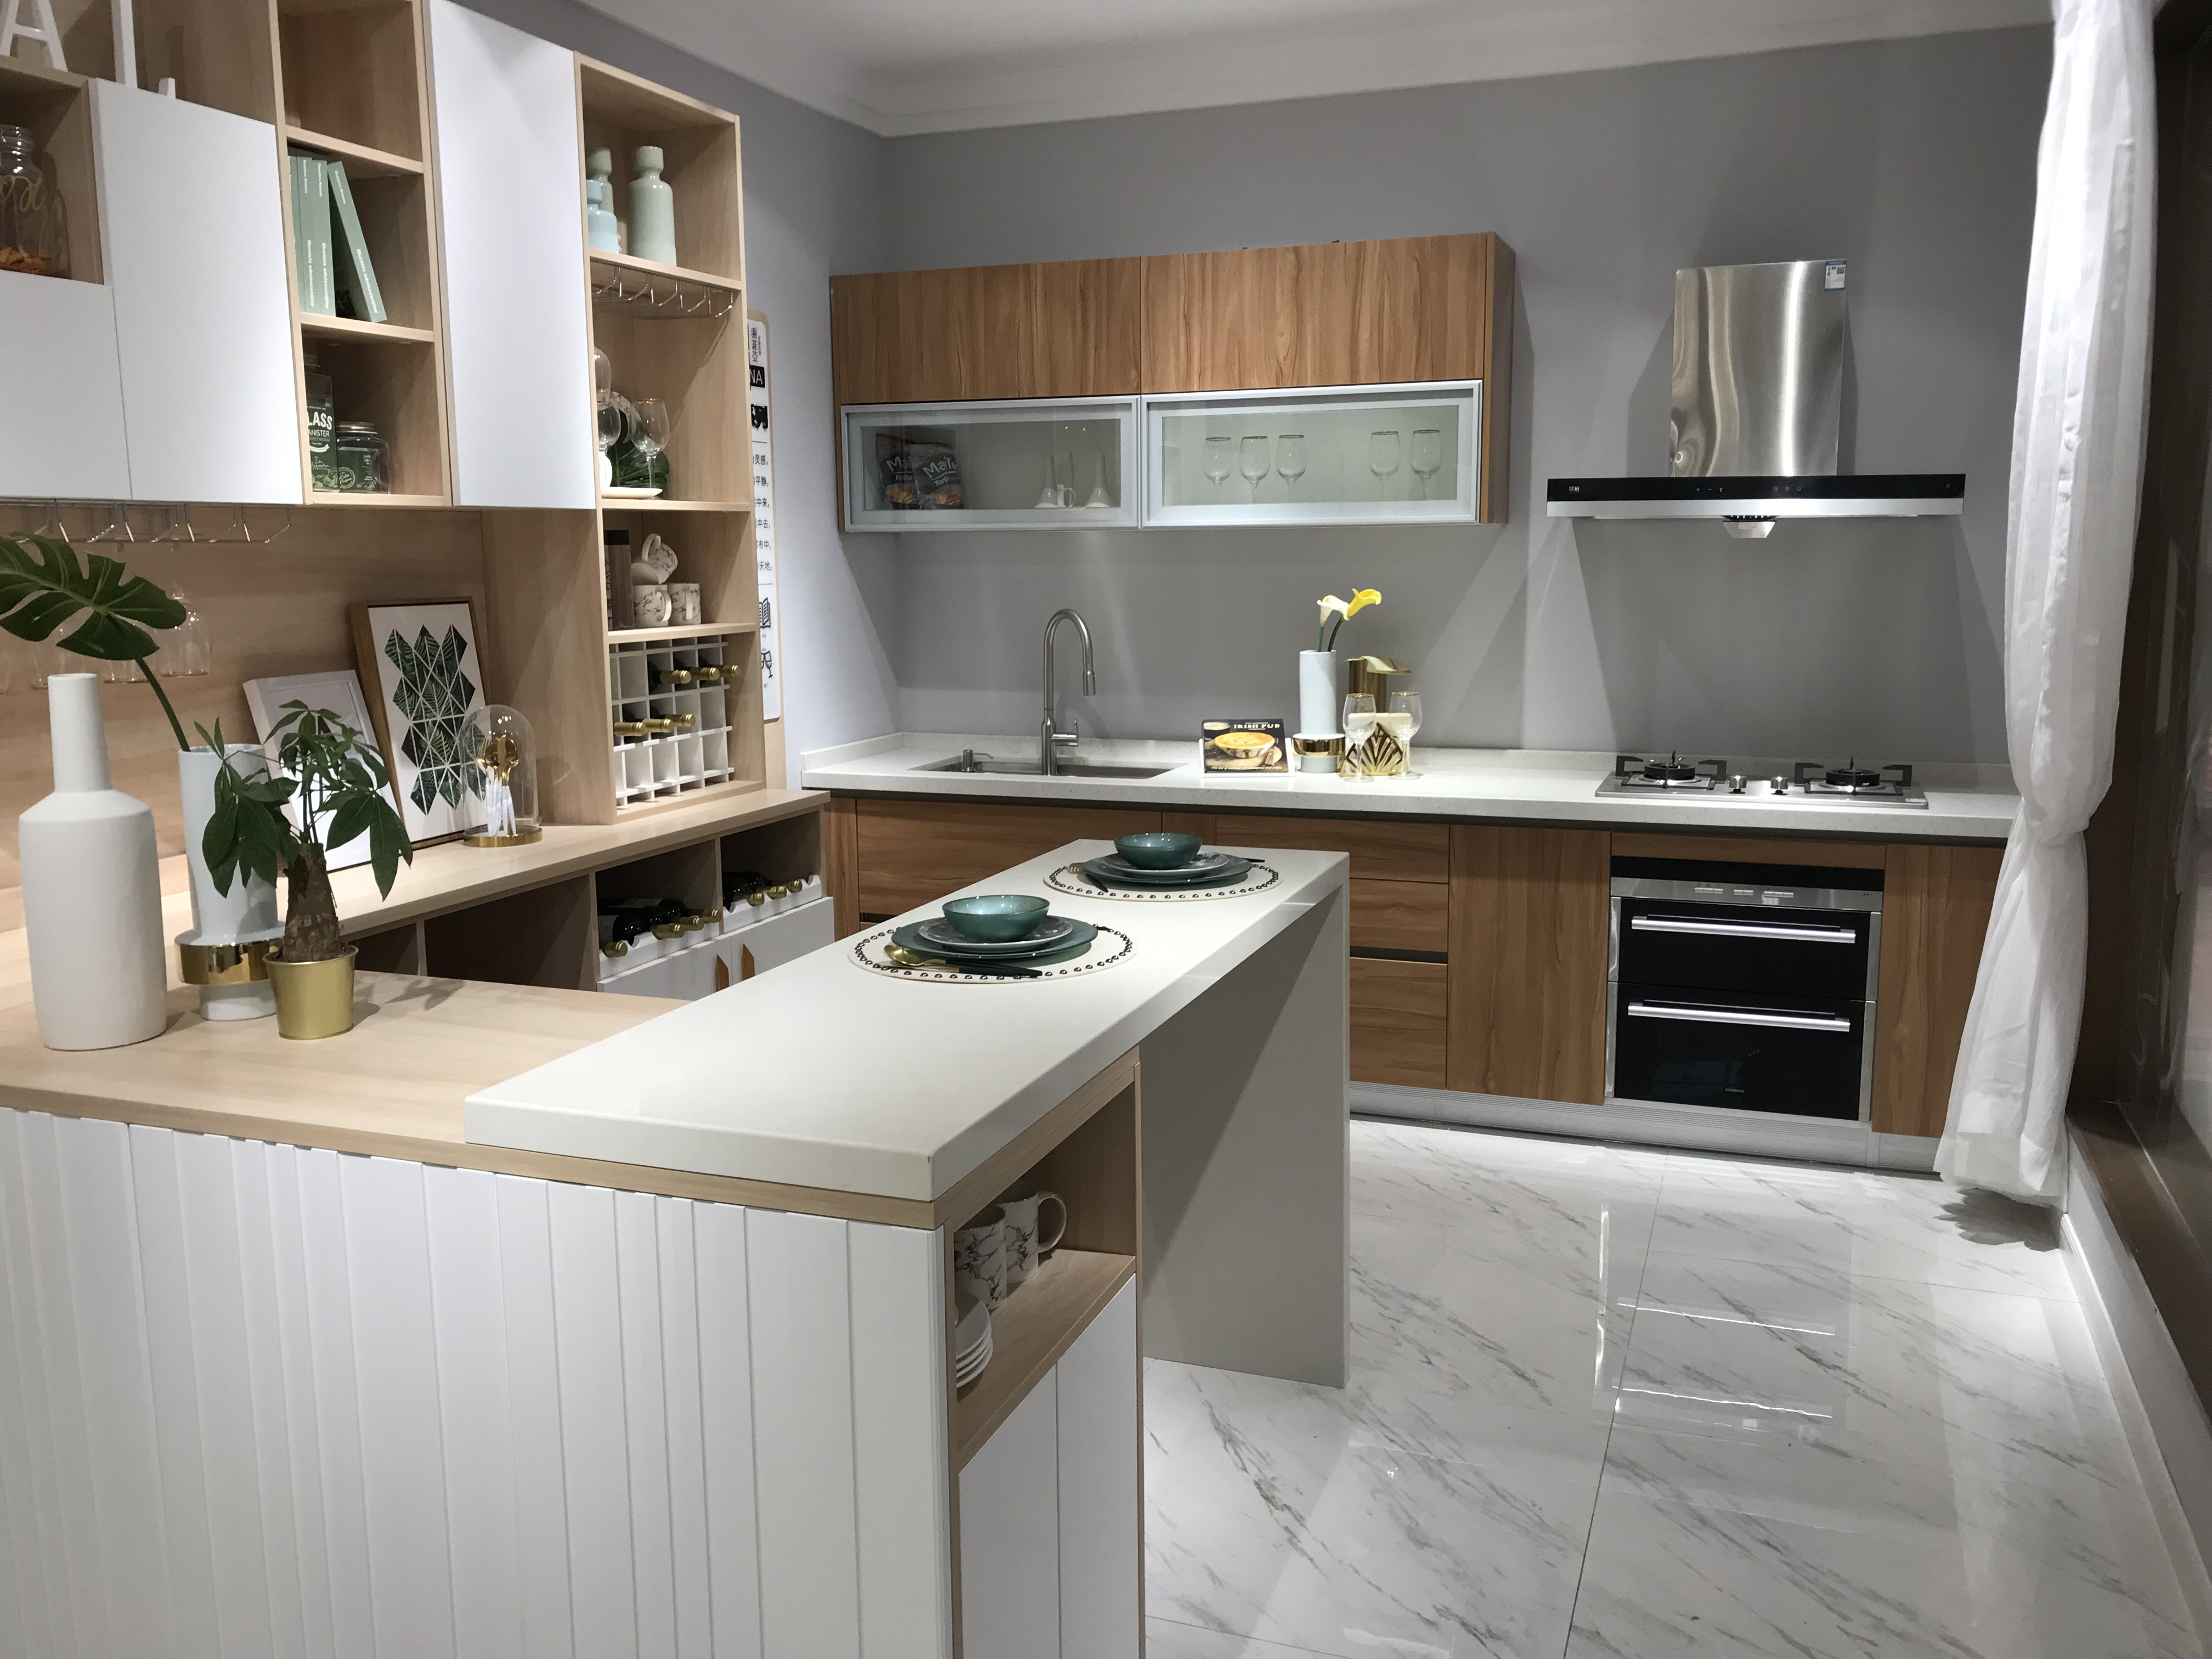 board price/plywood uae unique home hanging kitchen